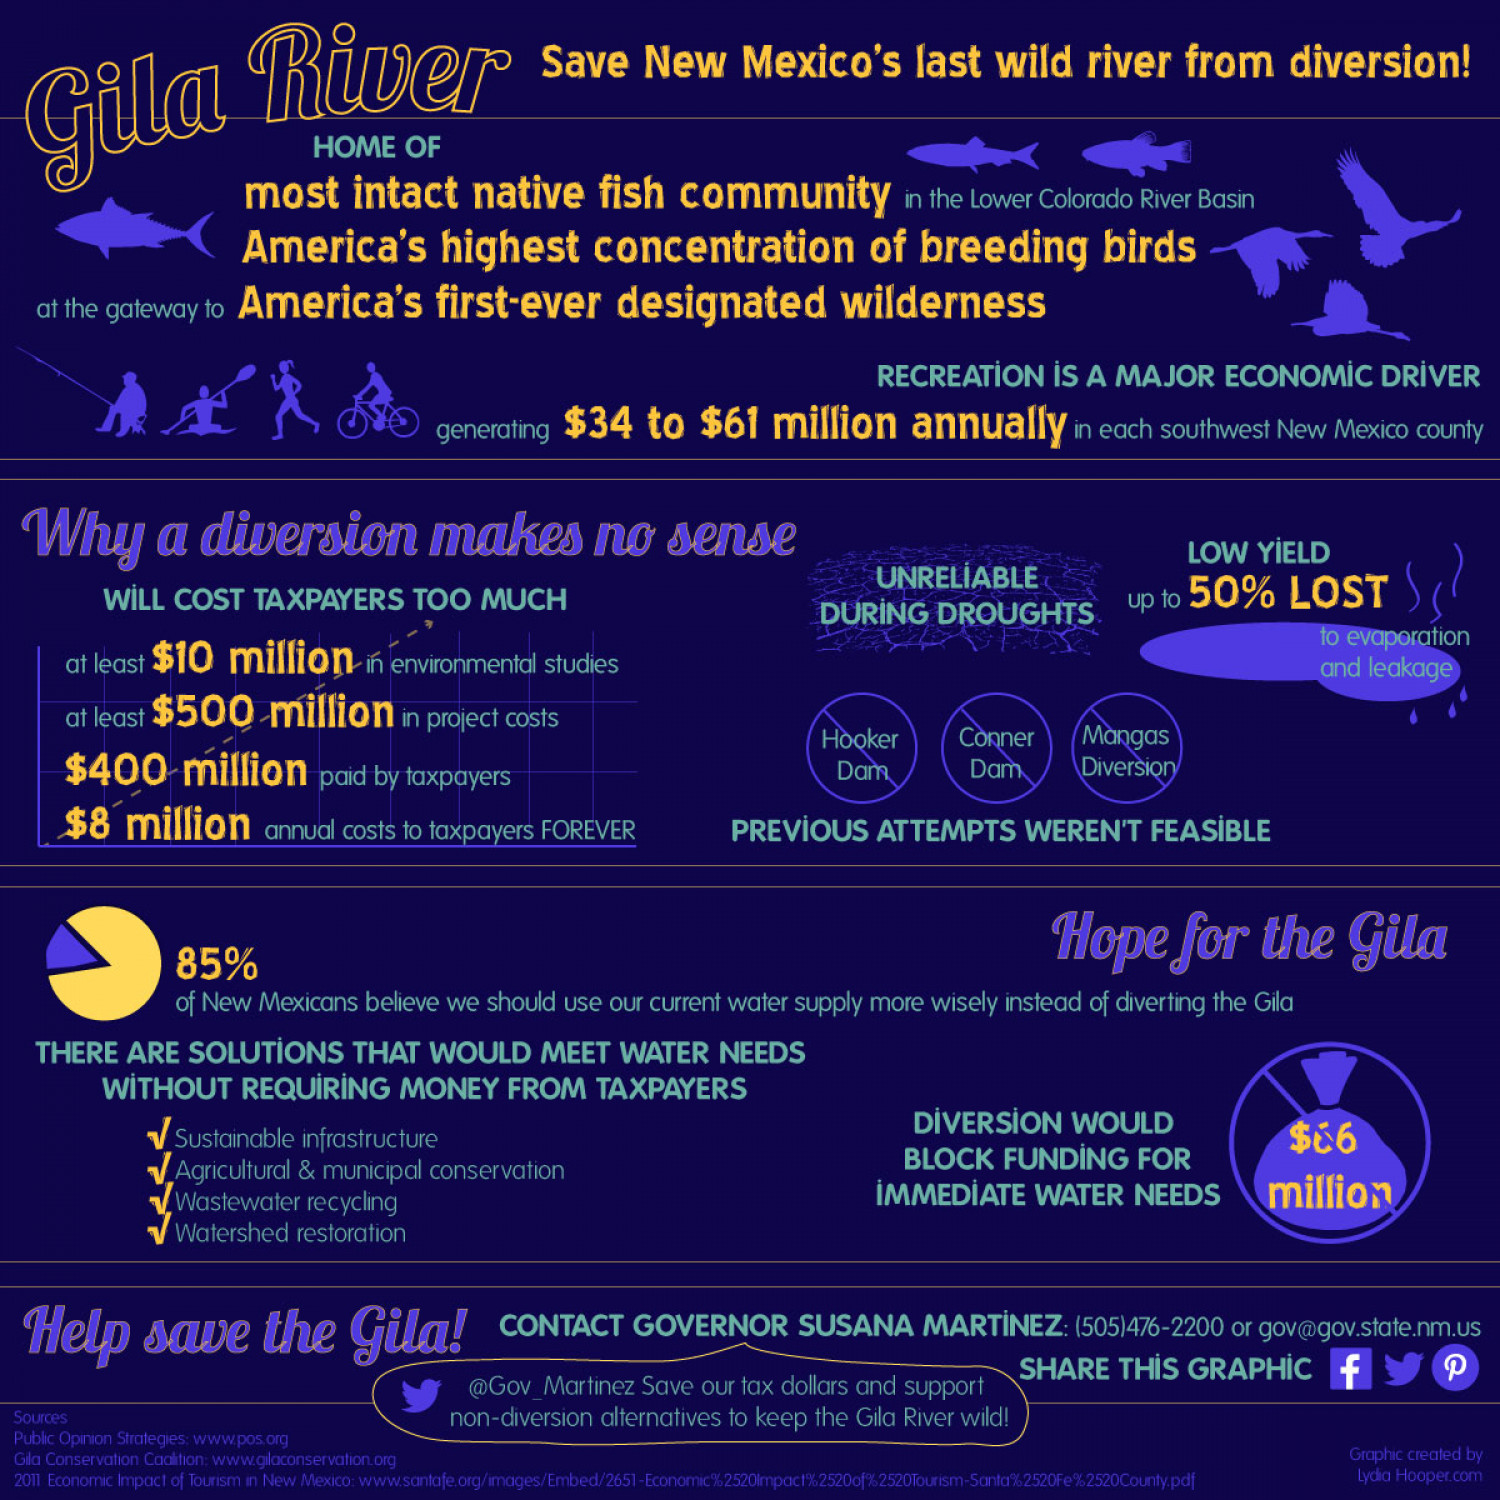 Gila River: Save New Mexico's last wild river from diversion Infographic